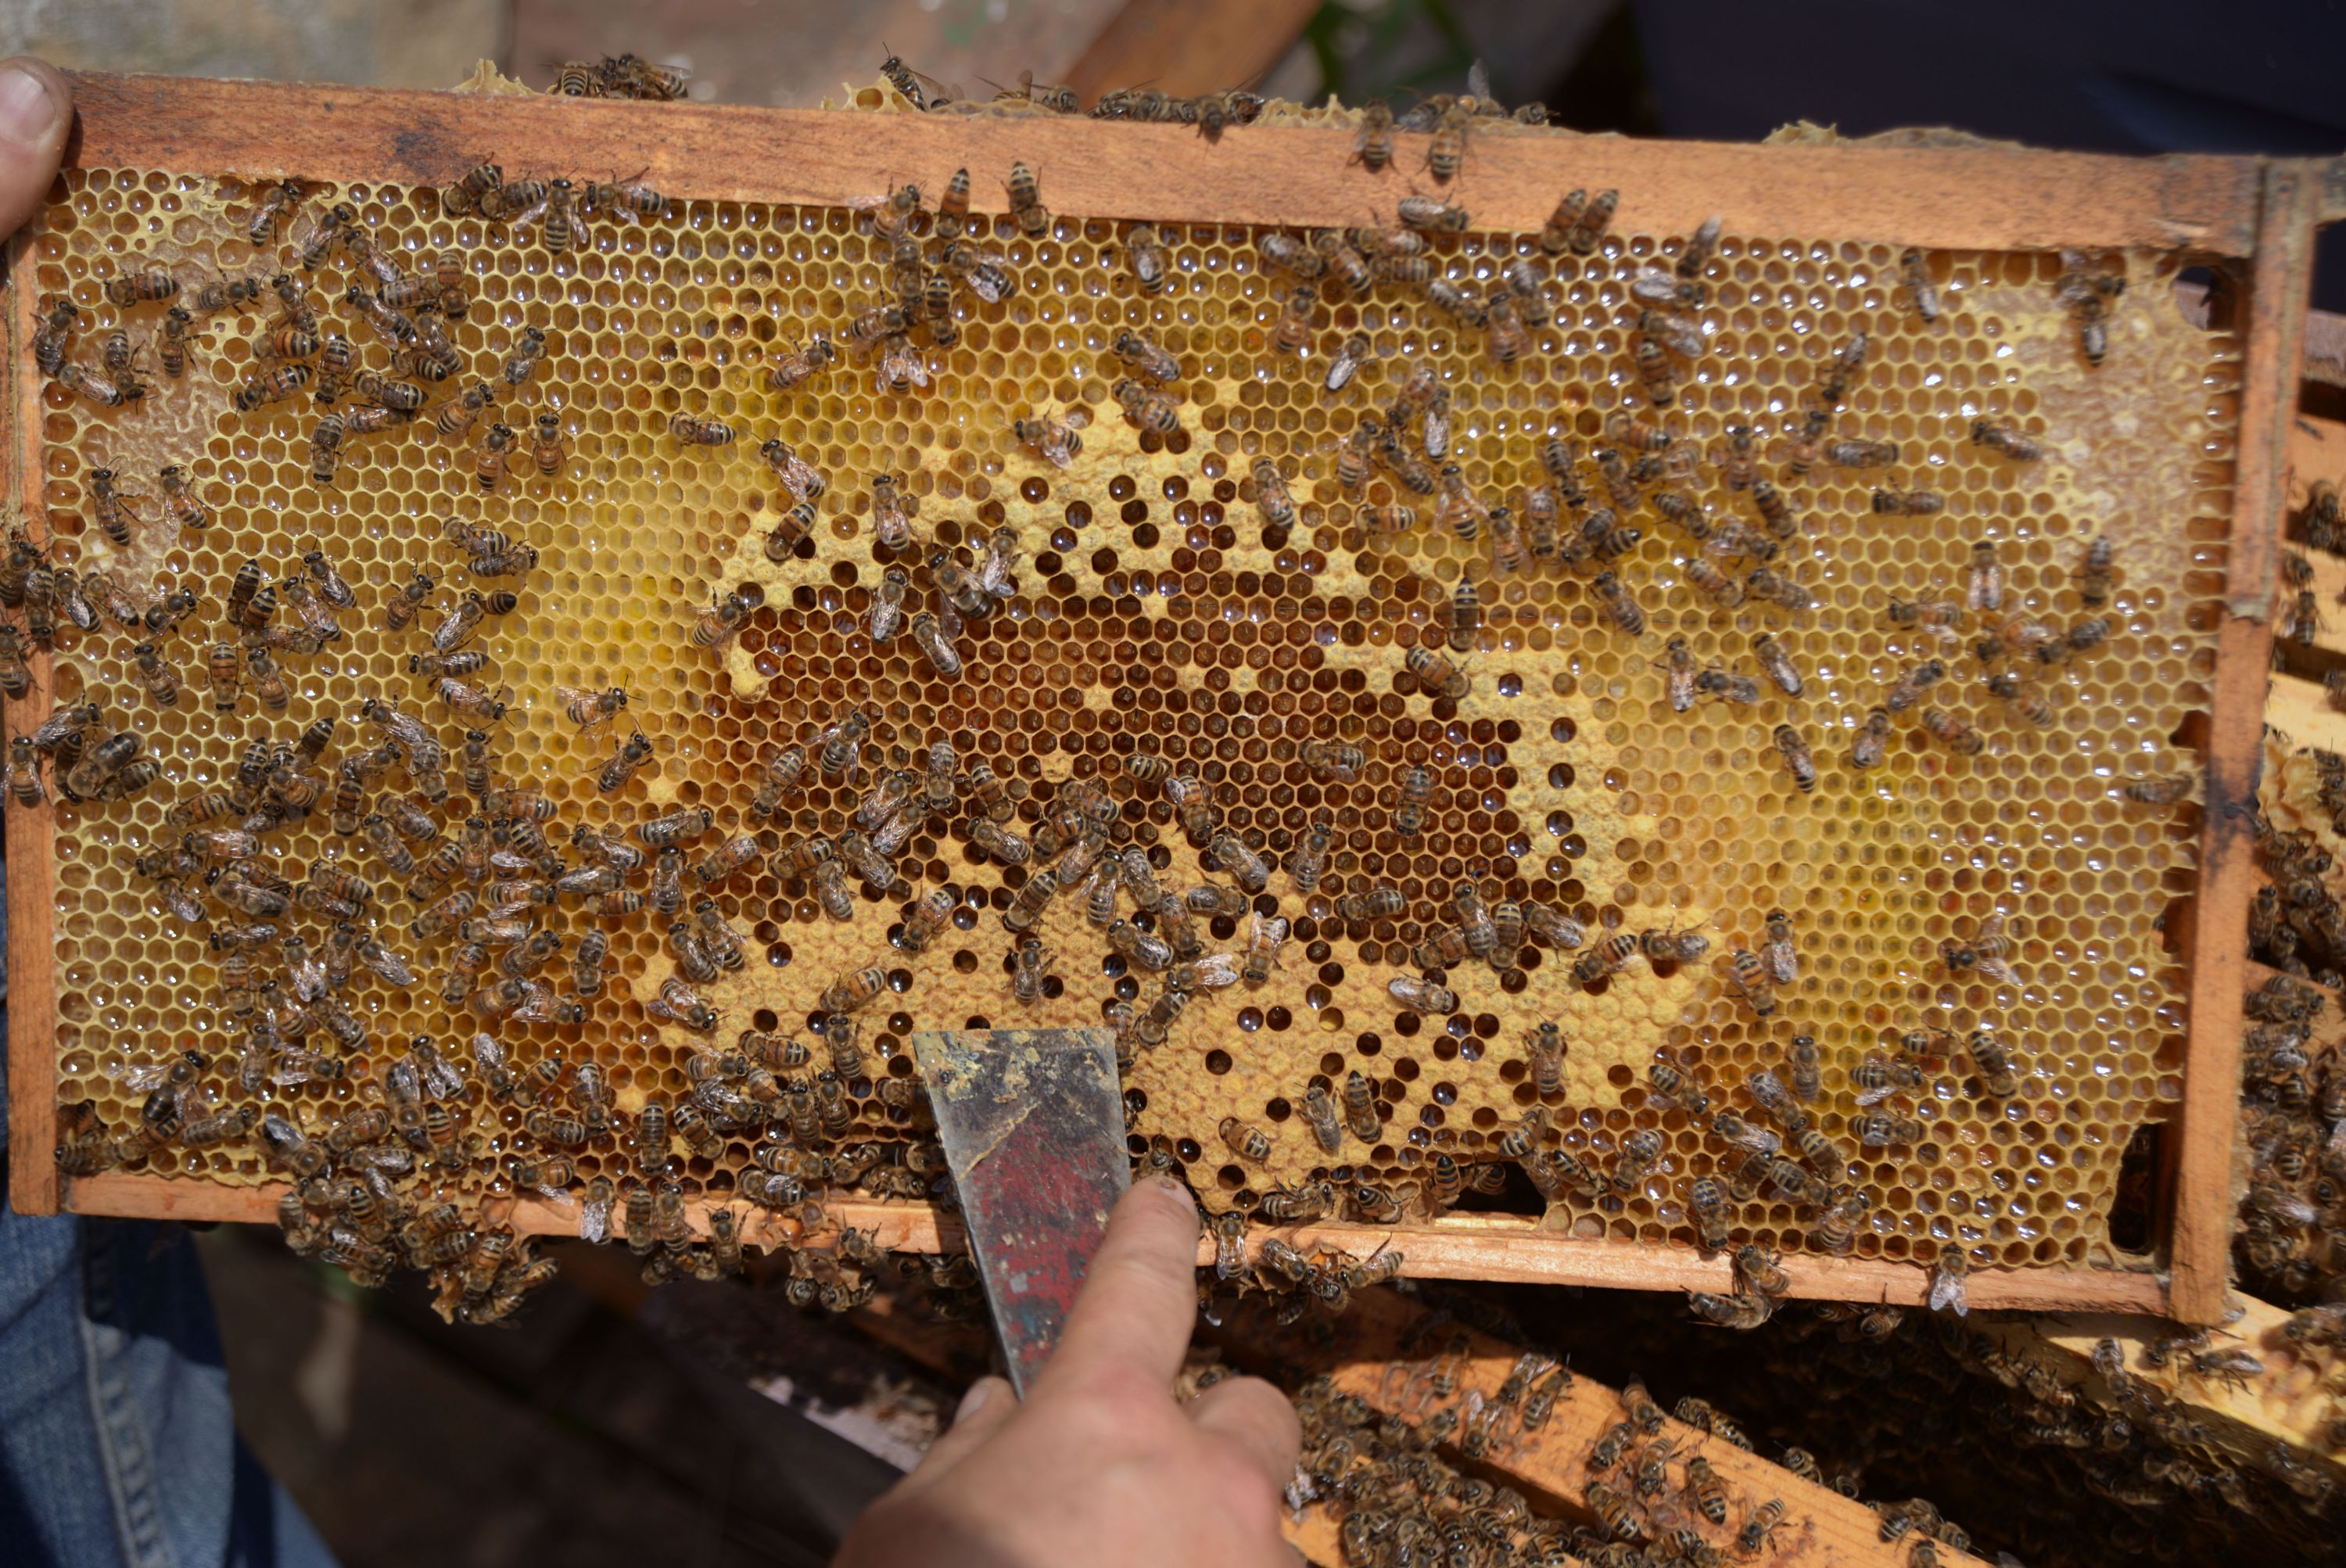 backfilling honey in brood frame